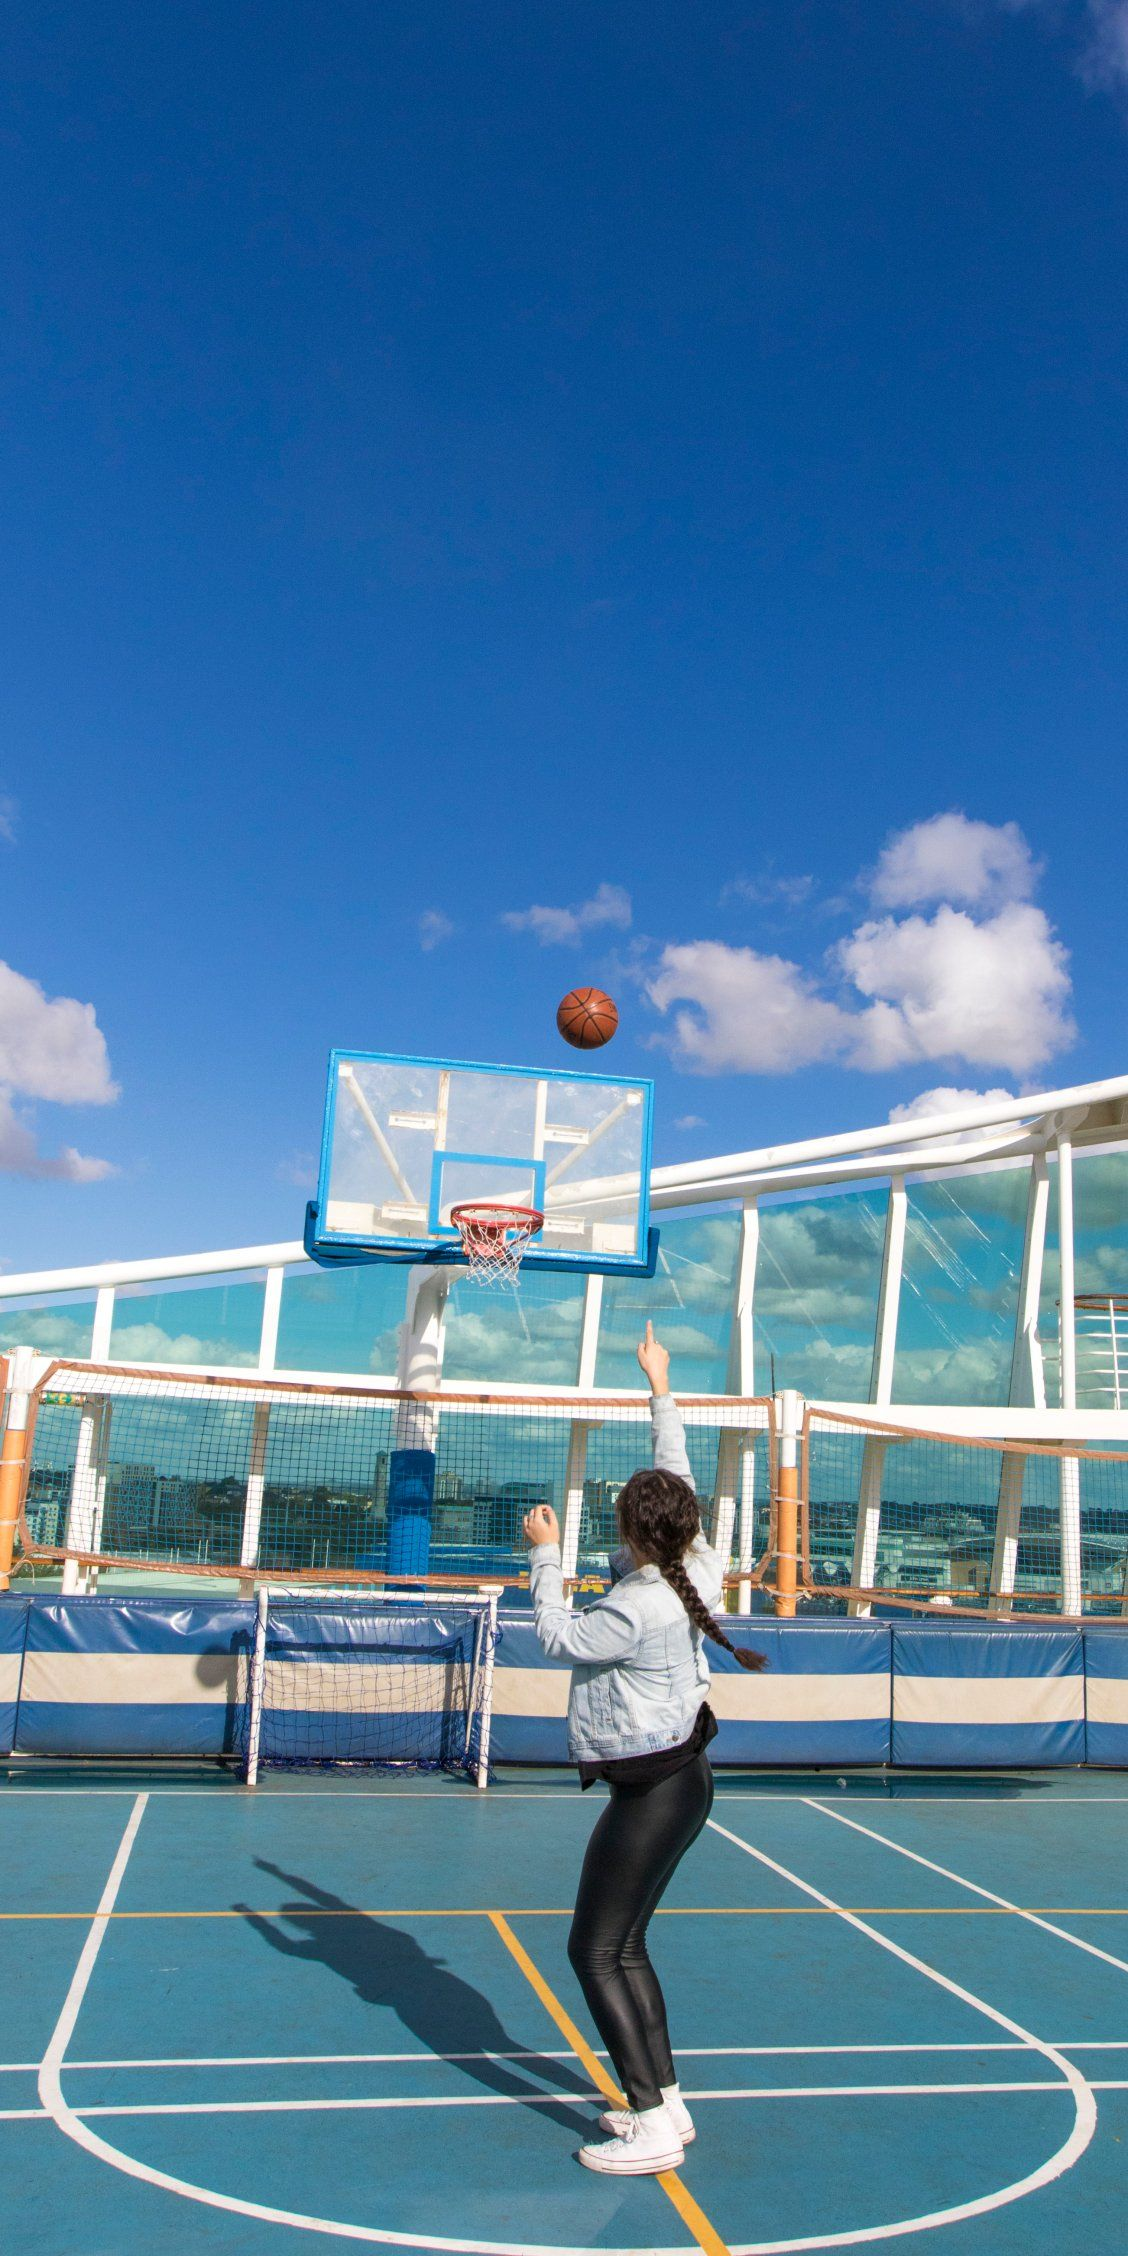 Navigator Of The Seas Whether It S A Quick Volleyball Match Or A Full Game Of Basketball We Ve Got You Cove Basketball Workouts Basketball Basketball Plays